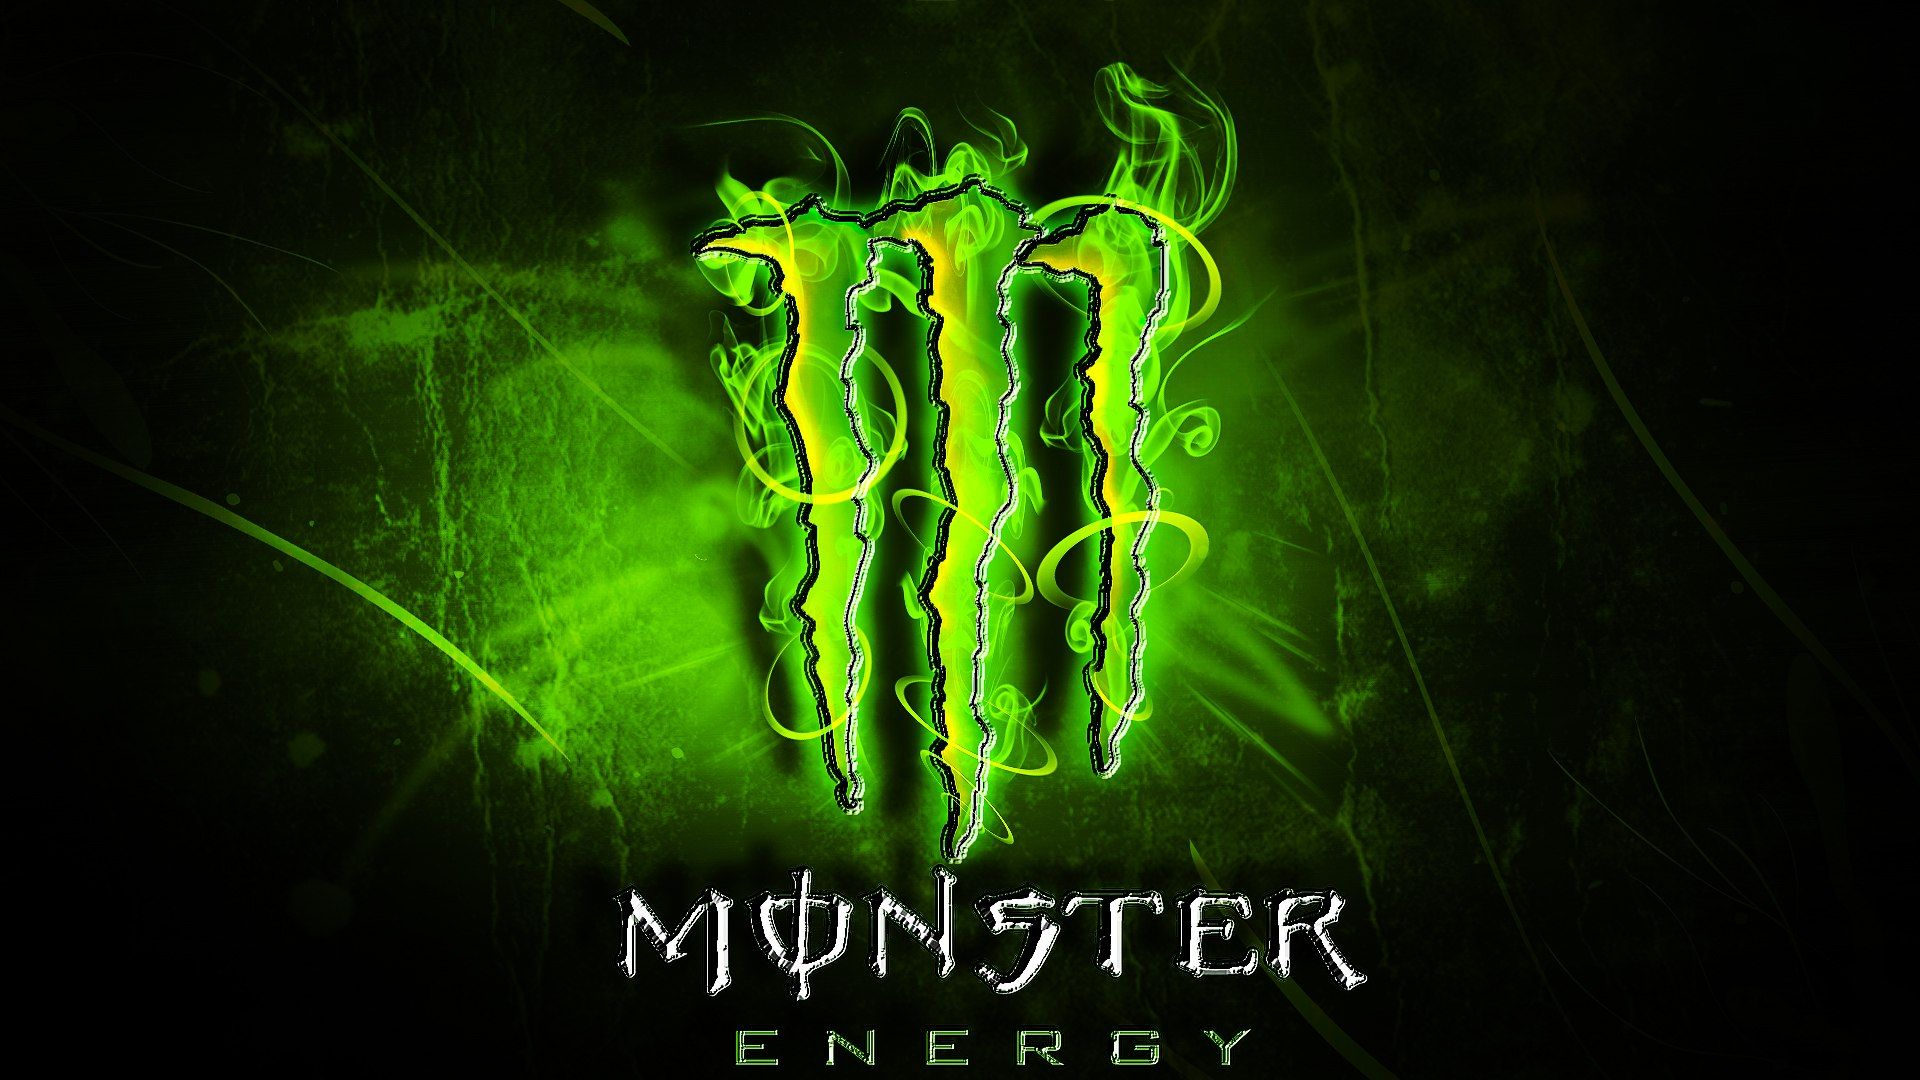 Monster energy wallpapers hd wallpaper cave images wallpapers monster energy wallpapers hd wallpaper cave voltagebd Images